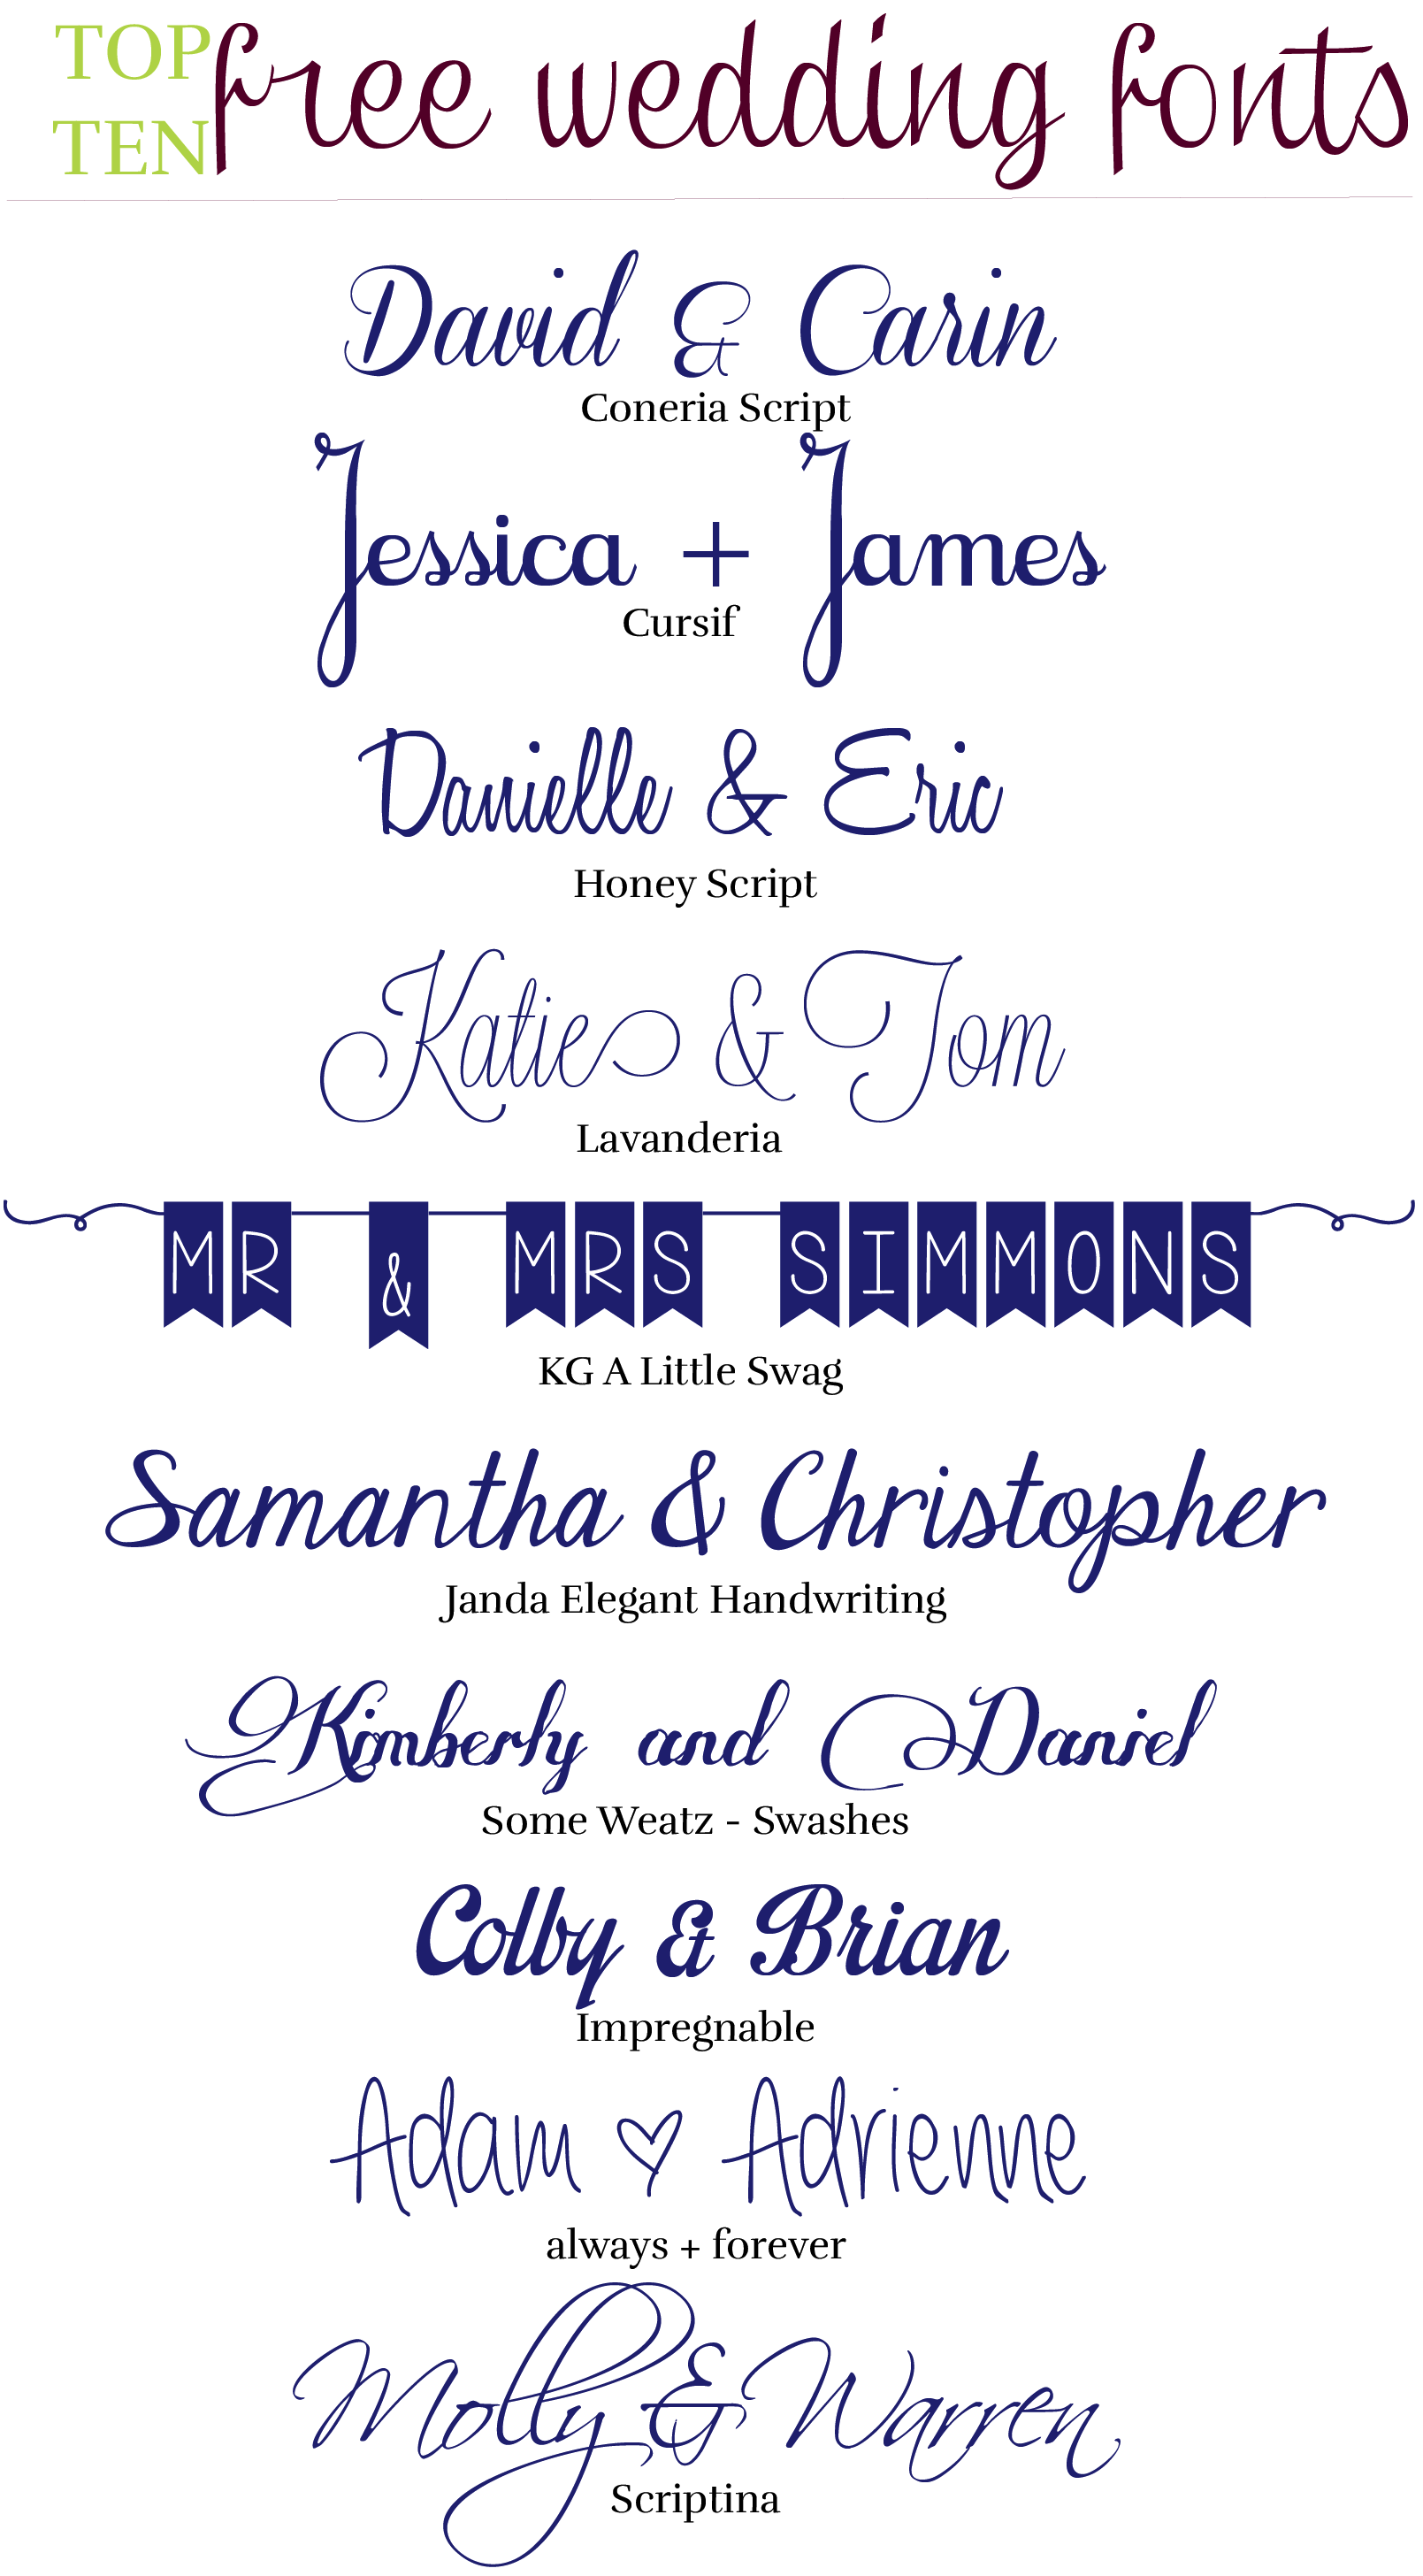 10 Free Wedding Fonts | The Event Crashers | Wedding ideas ...